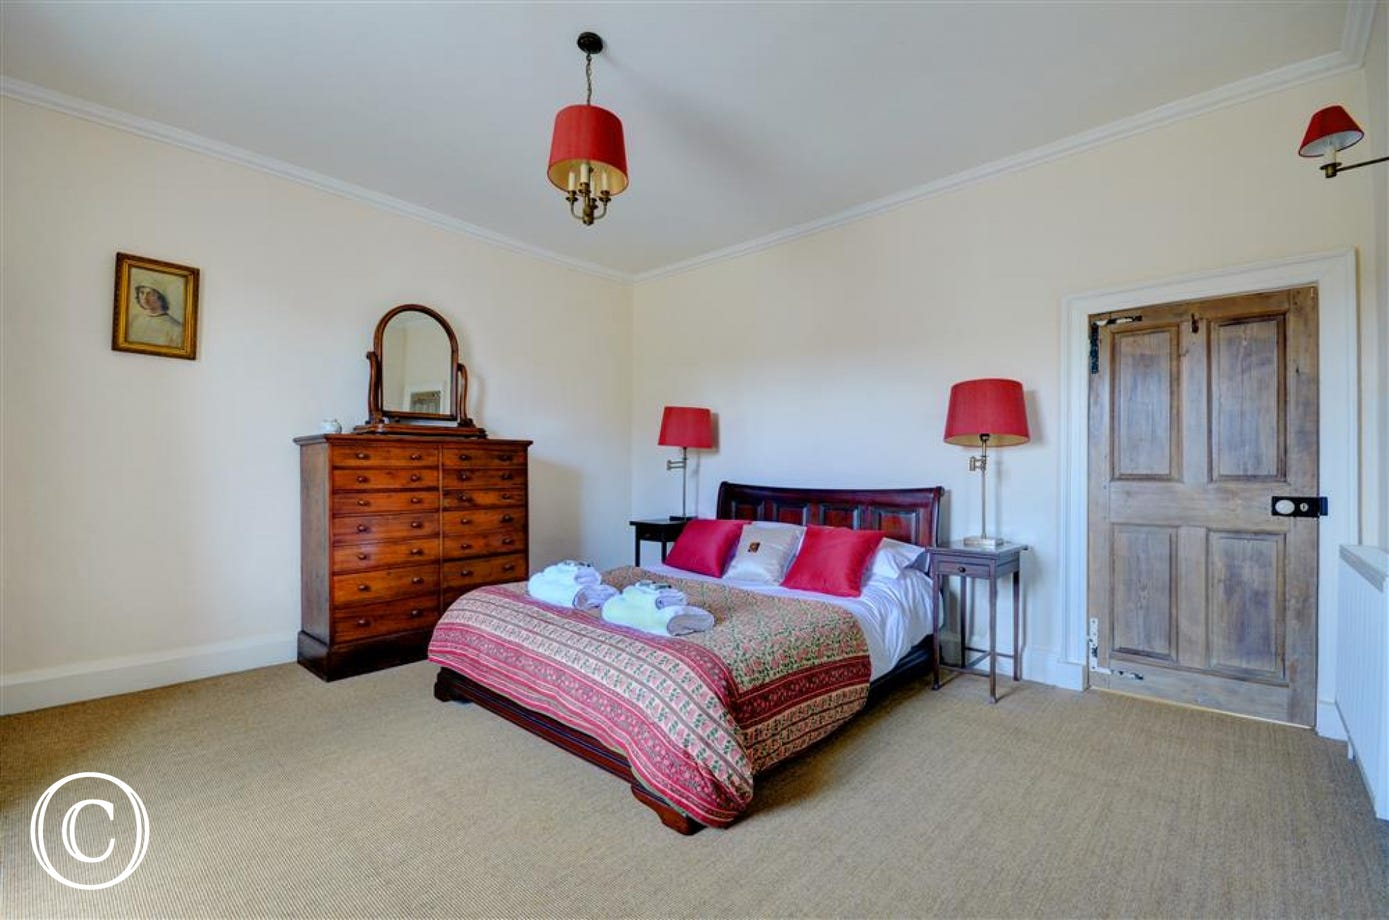 Spacious bedroom with king sized sleigh bed